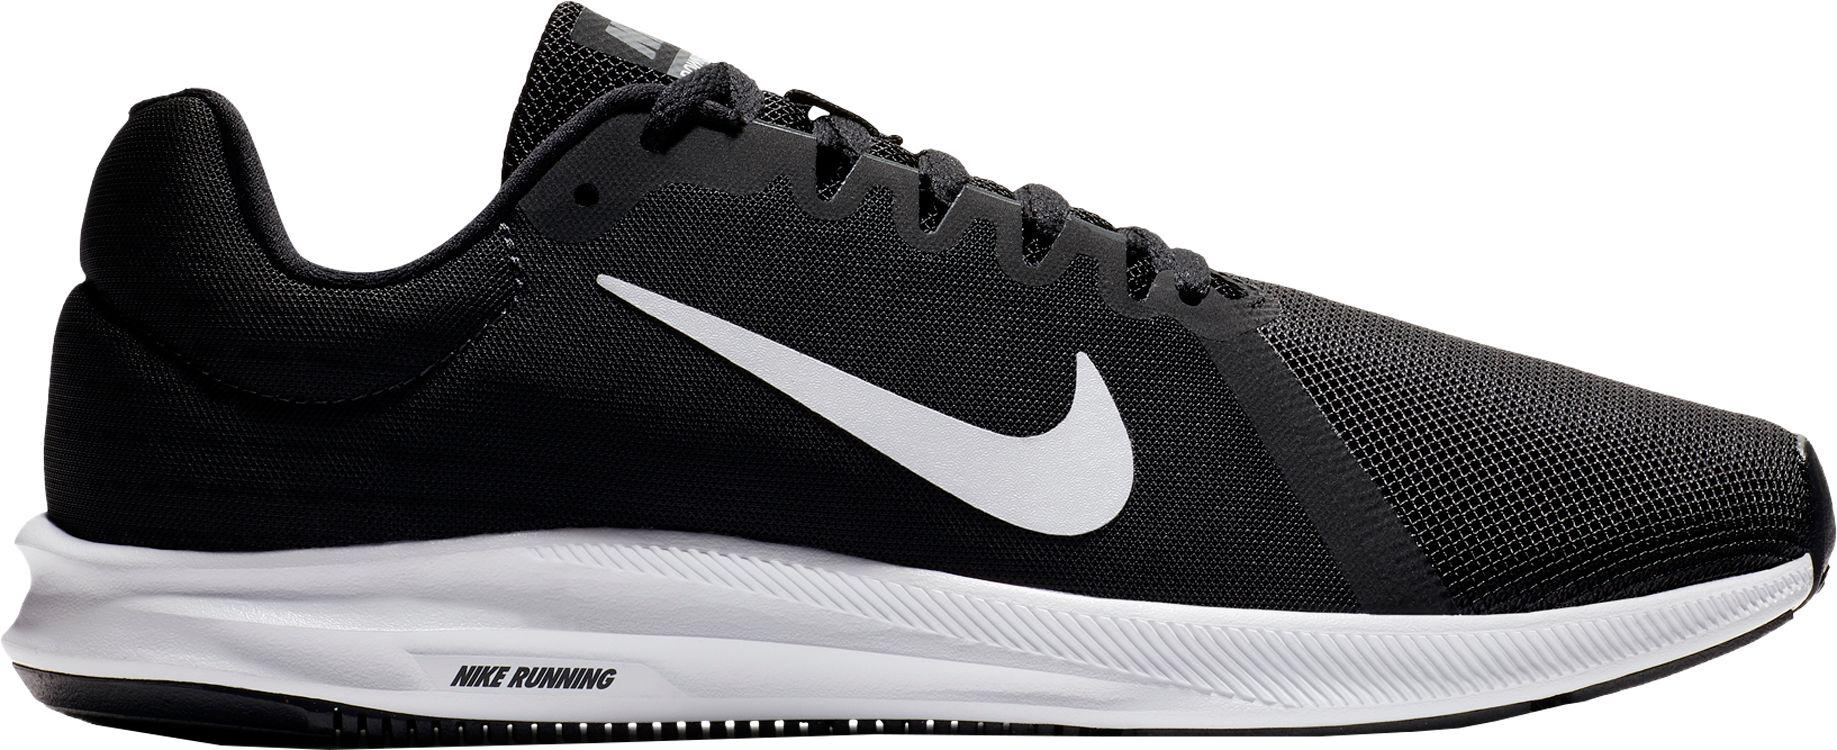 6510b5fb134 Lyst - Nike Downshifter 8 Running Shoes in Black for Men